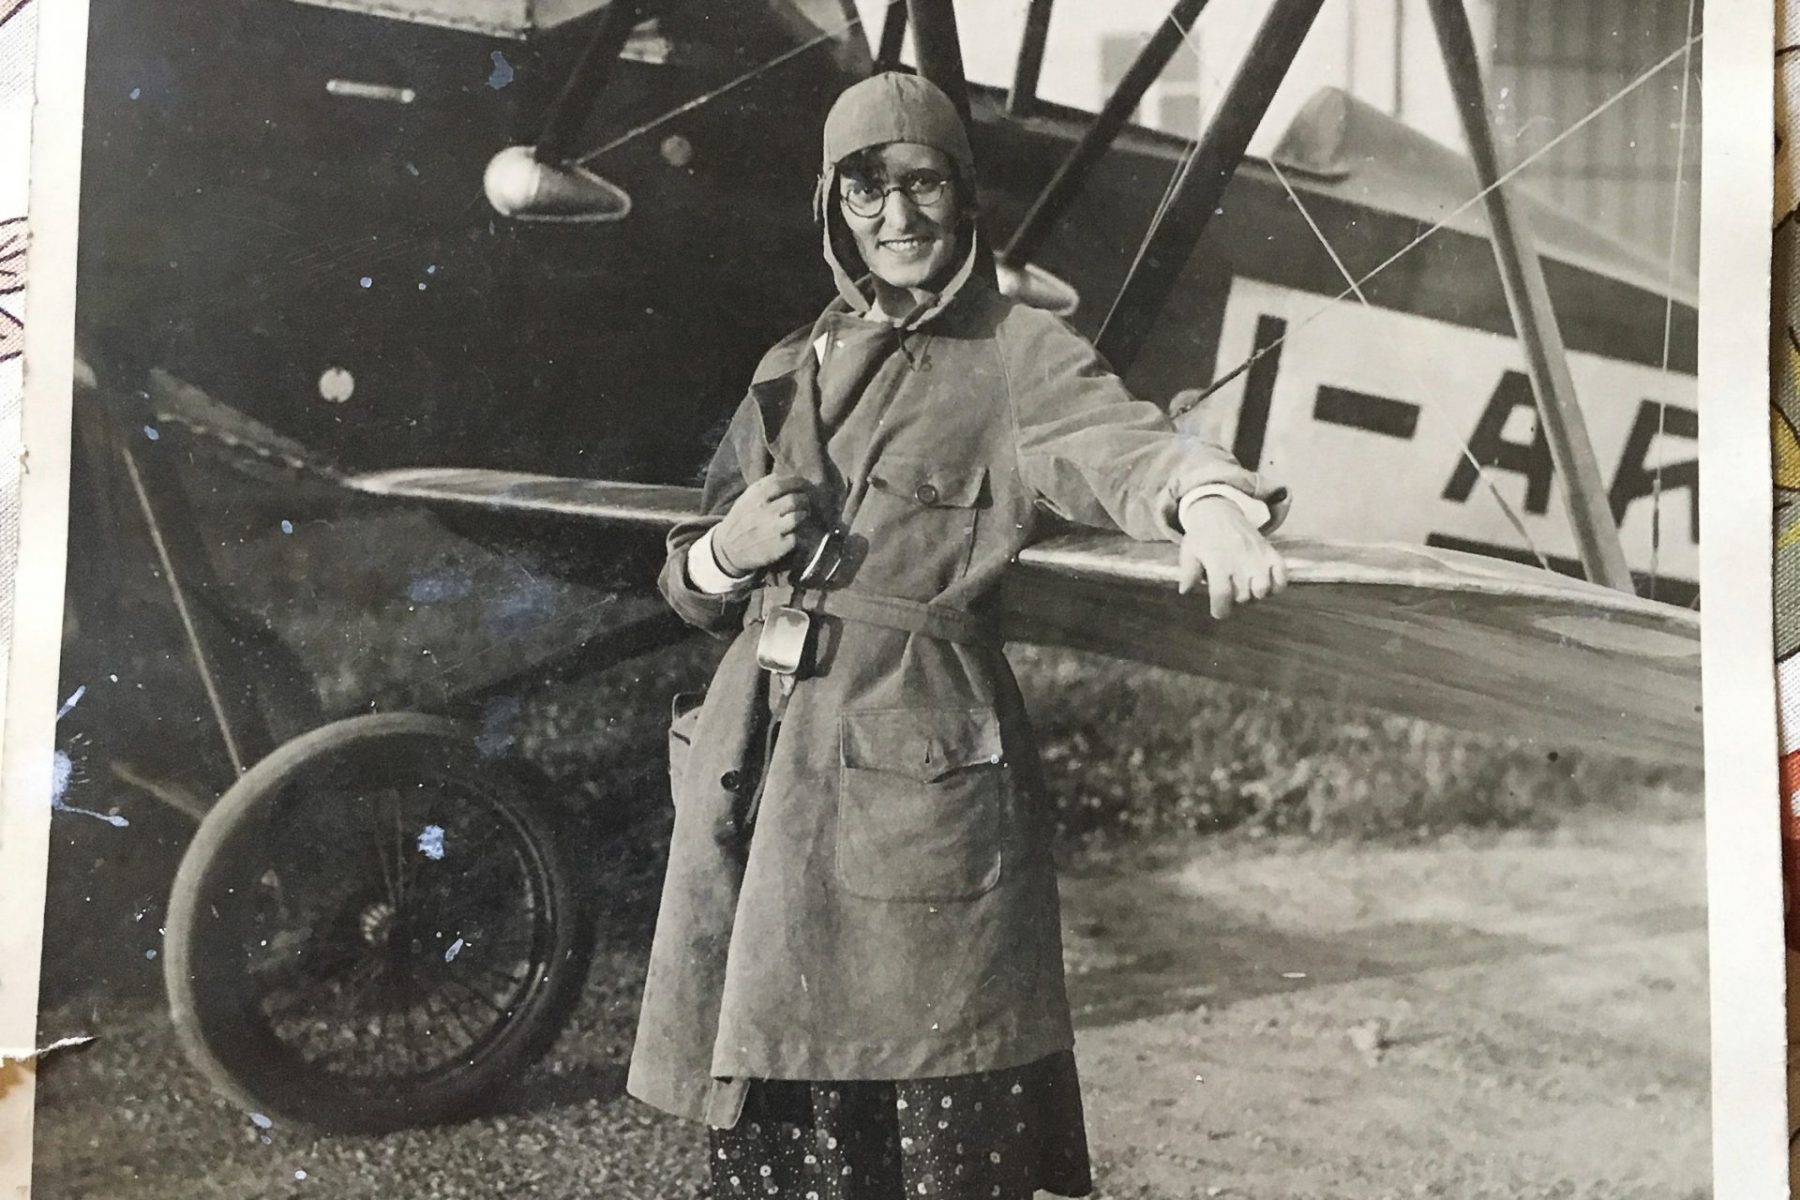 """Great-aunt Bice at her first flight Memories keep popping up. A black and white print featuring my Great-Aunt Bice on her first flight, July 13th 1930 (so says the caption on the back of the picture) at the airfield """"Gino Cima"""". Exactly 13 years later, during WW2, the airfield was bombed on the night of July 13th 1943, by the RAF."""